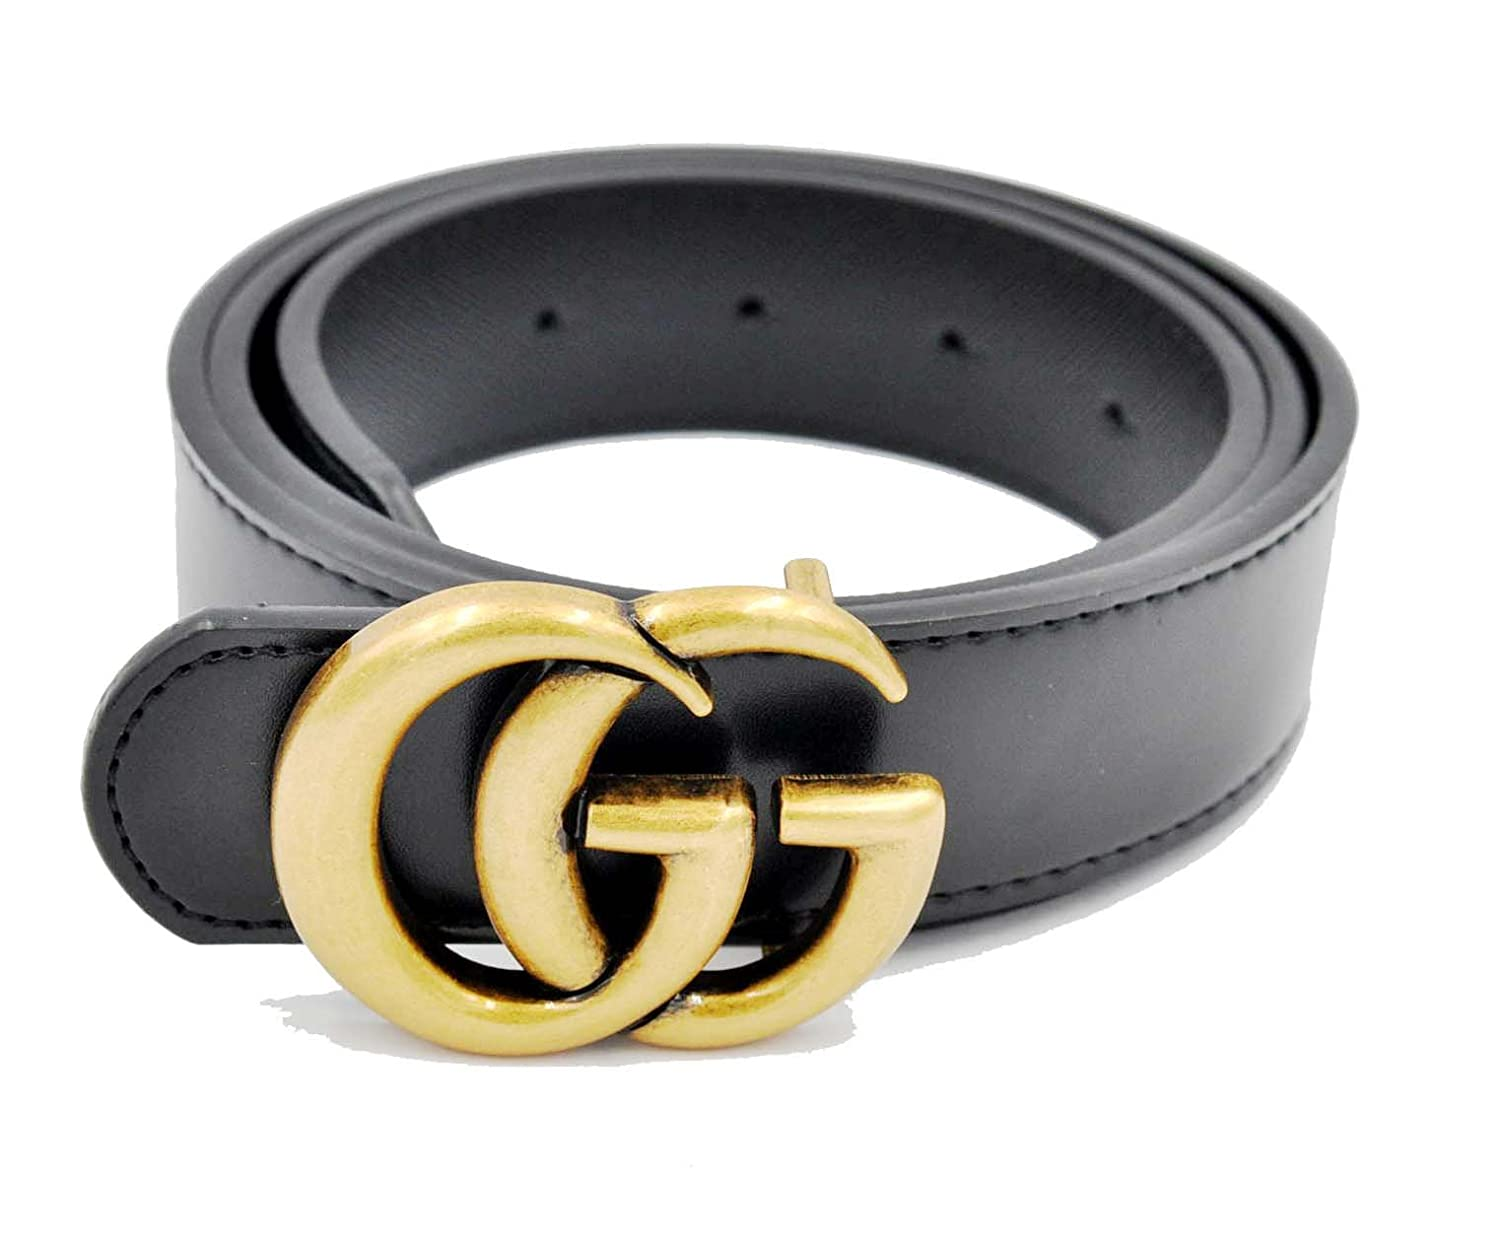 Luxury Designer GG Slim Belt for Women [3.2CM width] Non-Branded